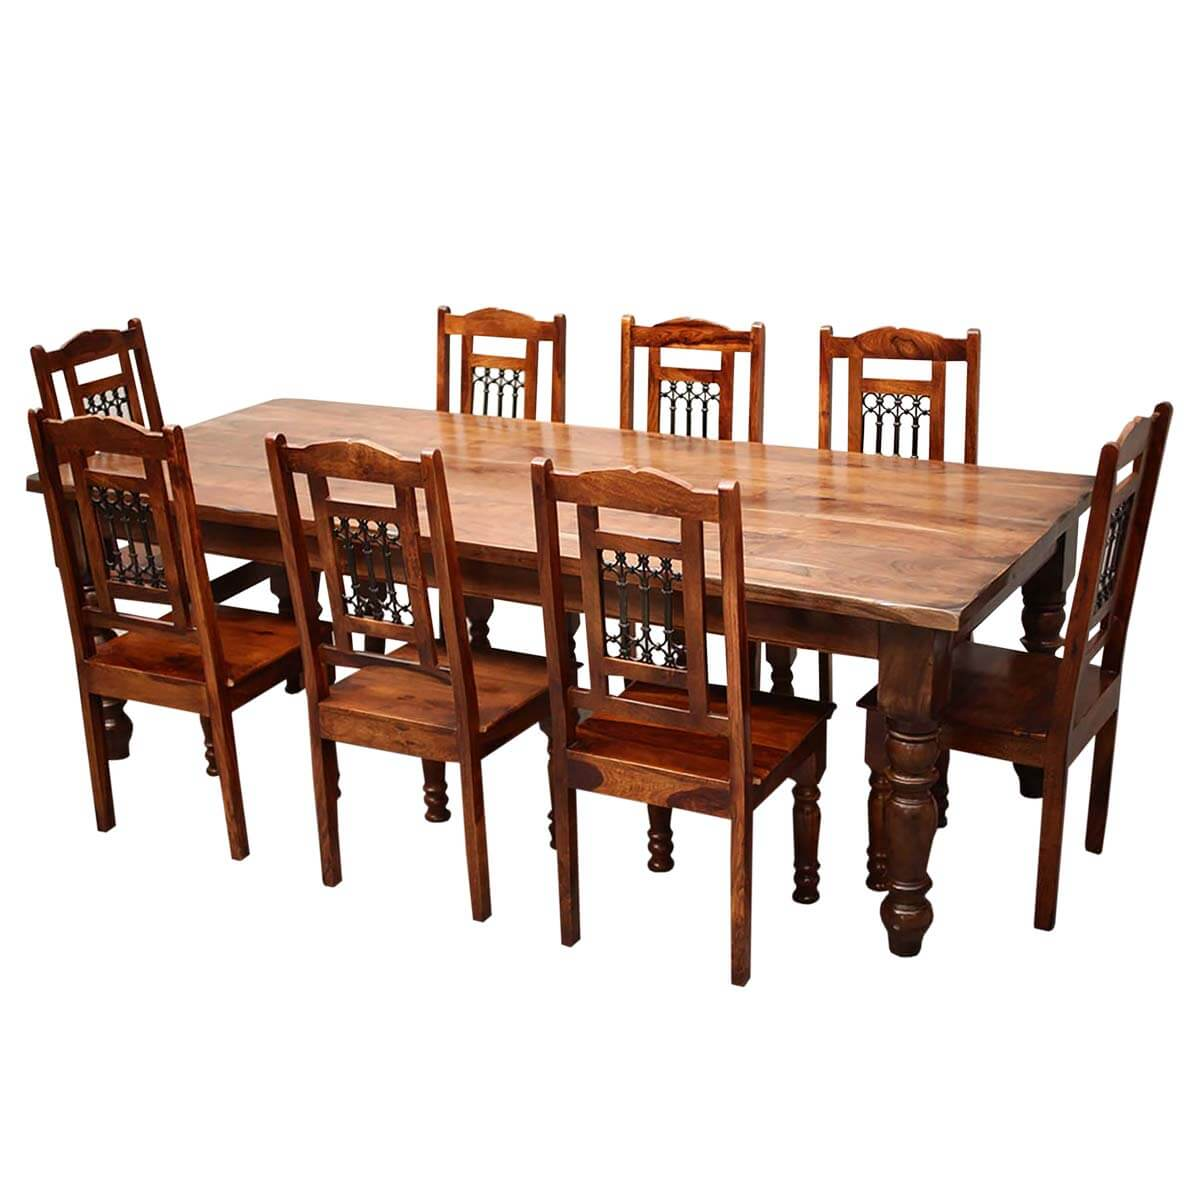 Rustic furniture solid wood large dining table 8 chair set for Rustic dining set